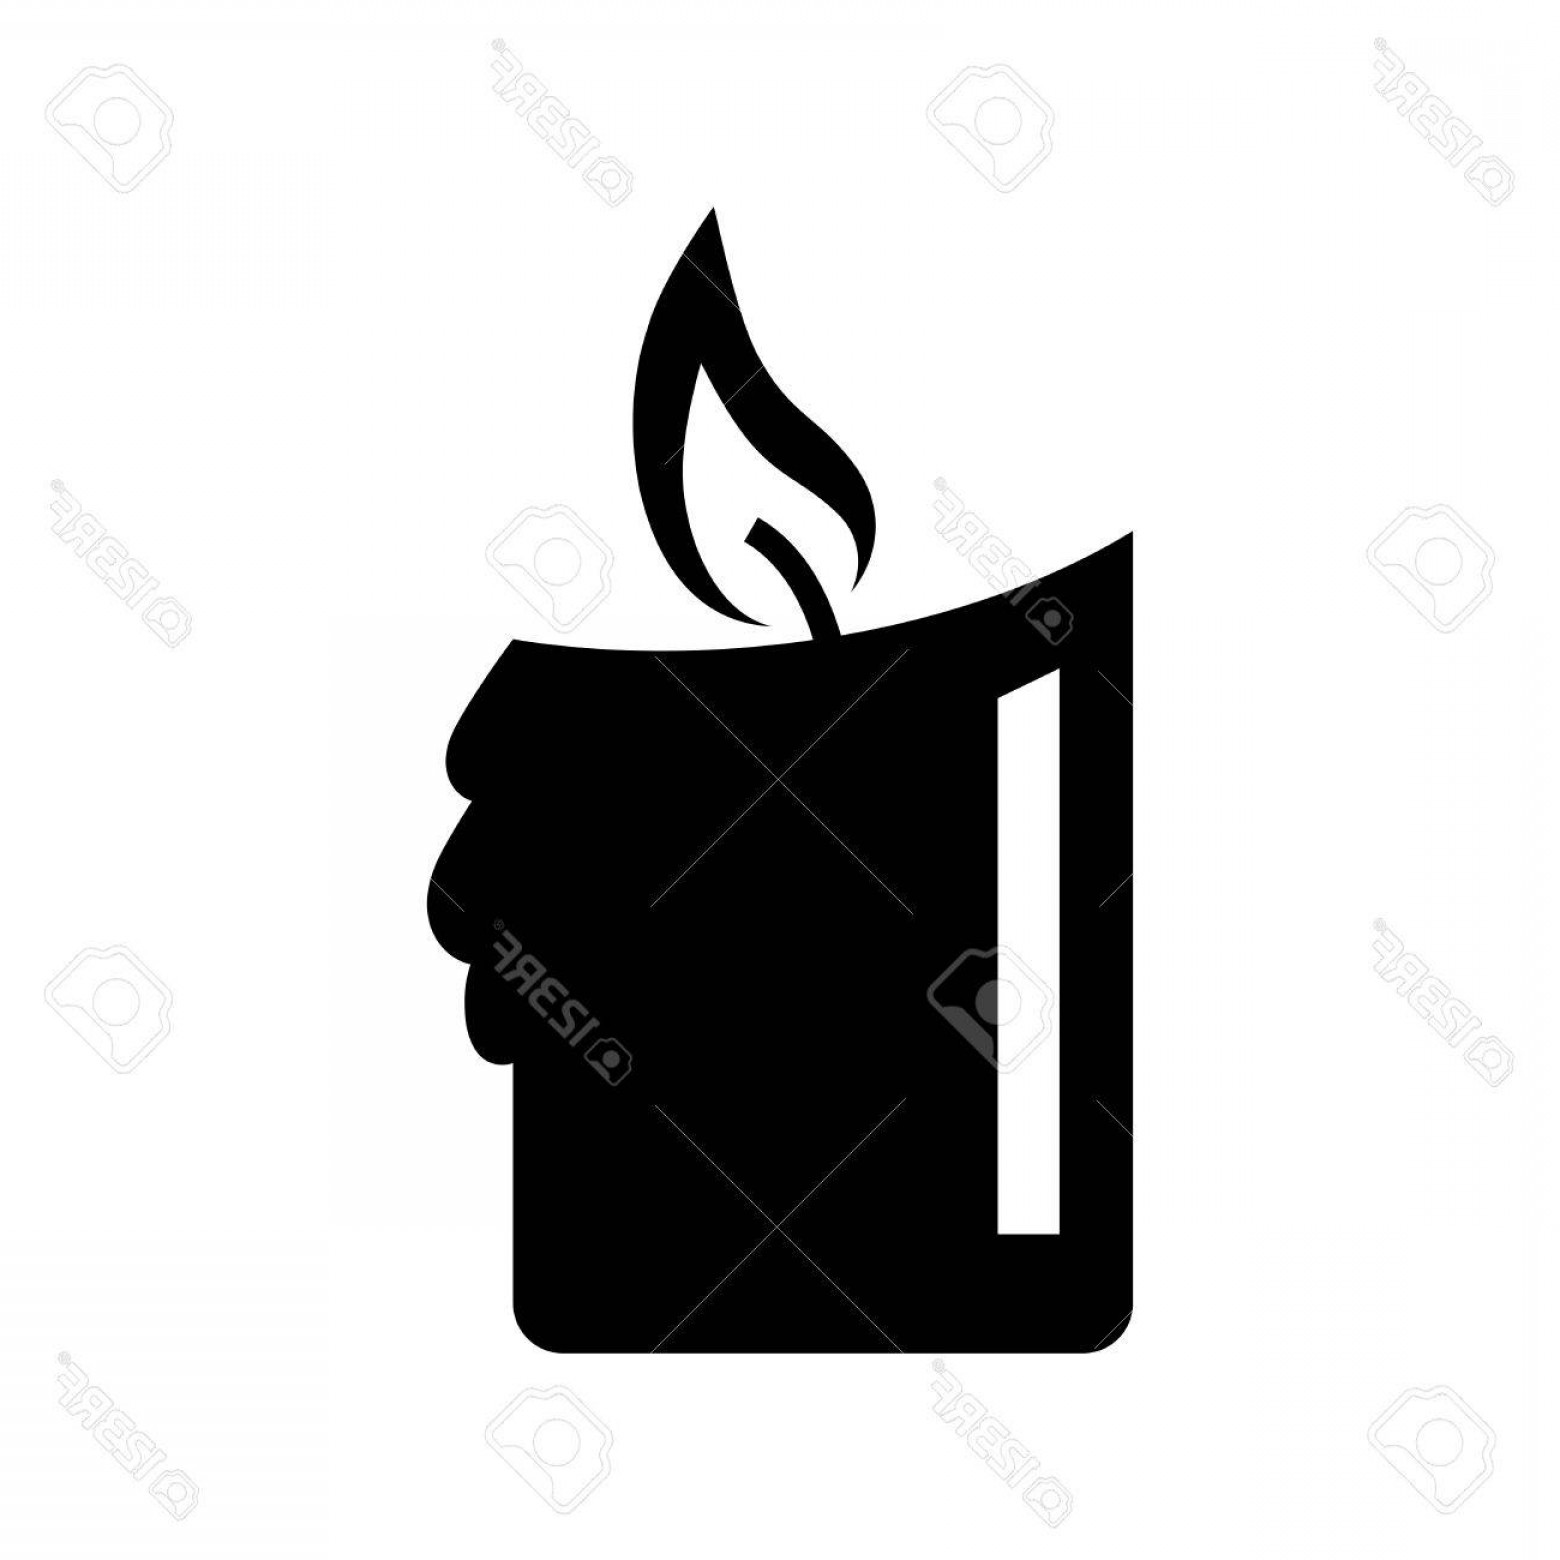 Candle Vector Black: Photostock Vector Black Candle Vector Icon On White Background